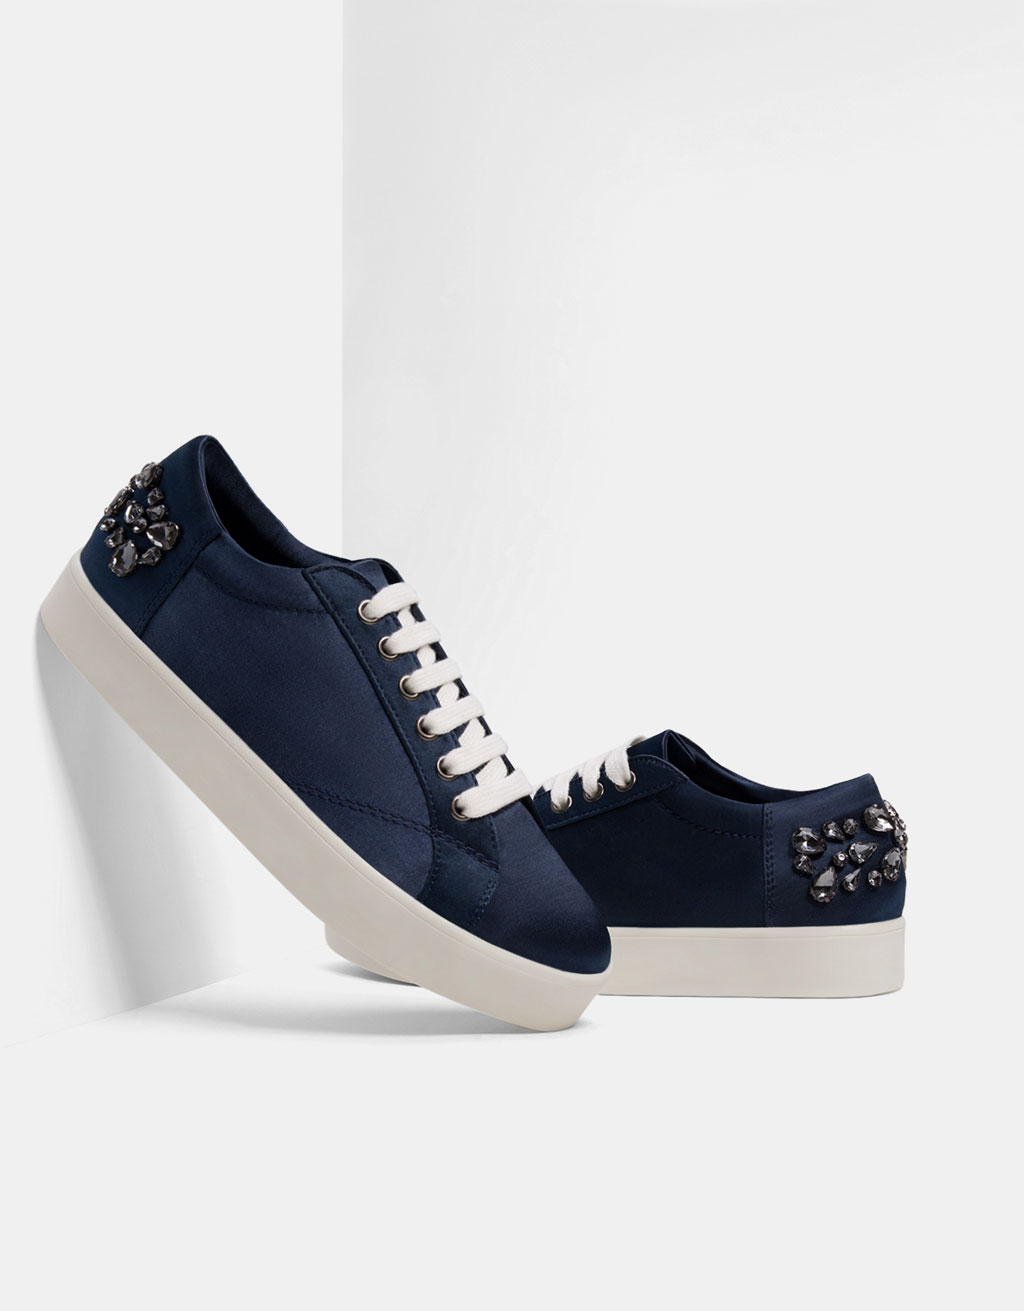 Bejewelled satin sneakers